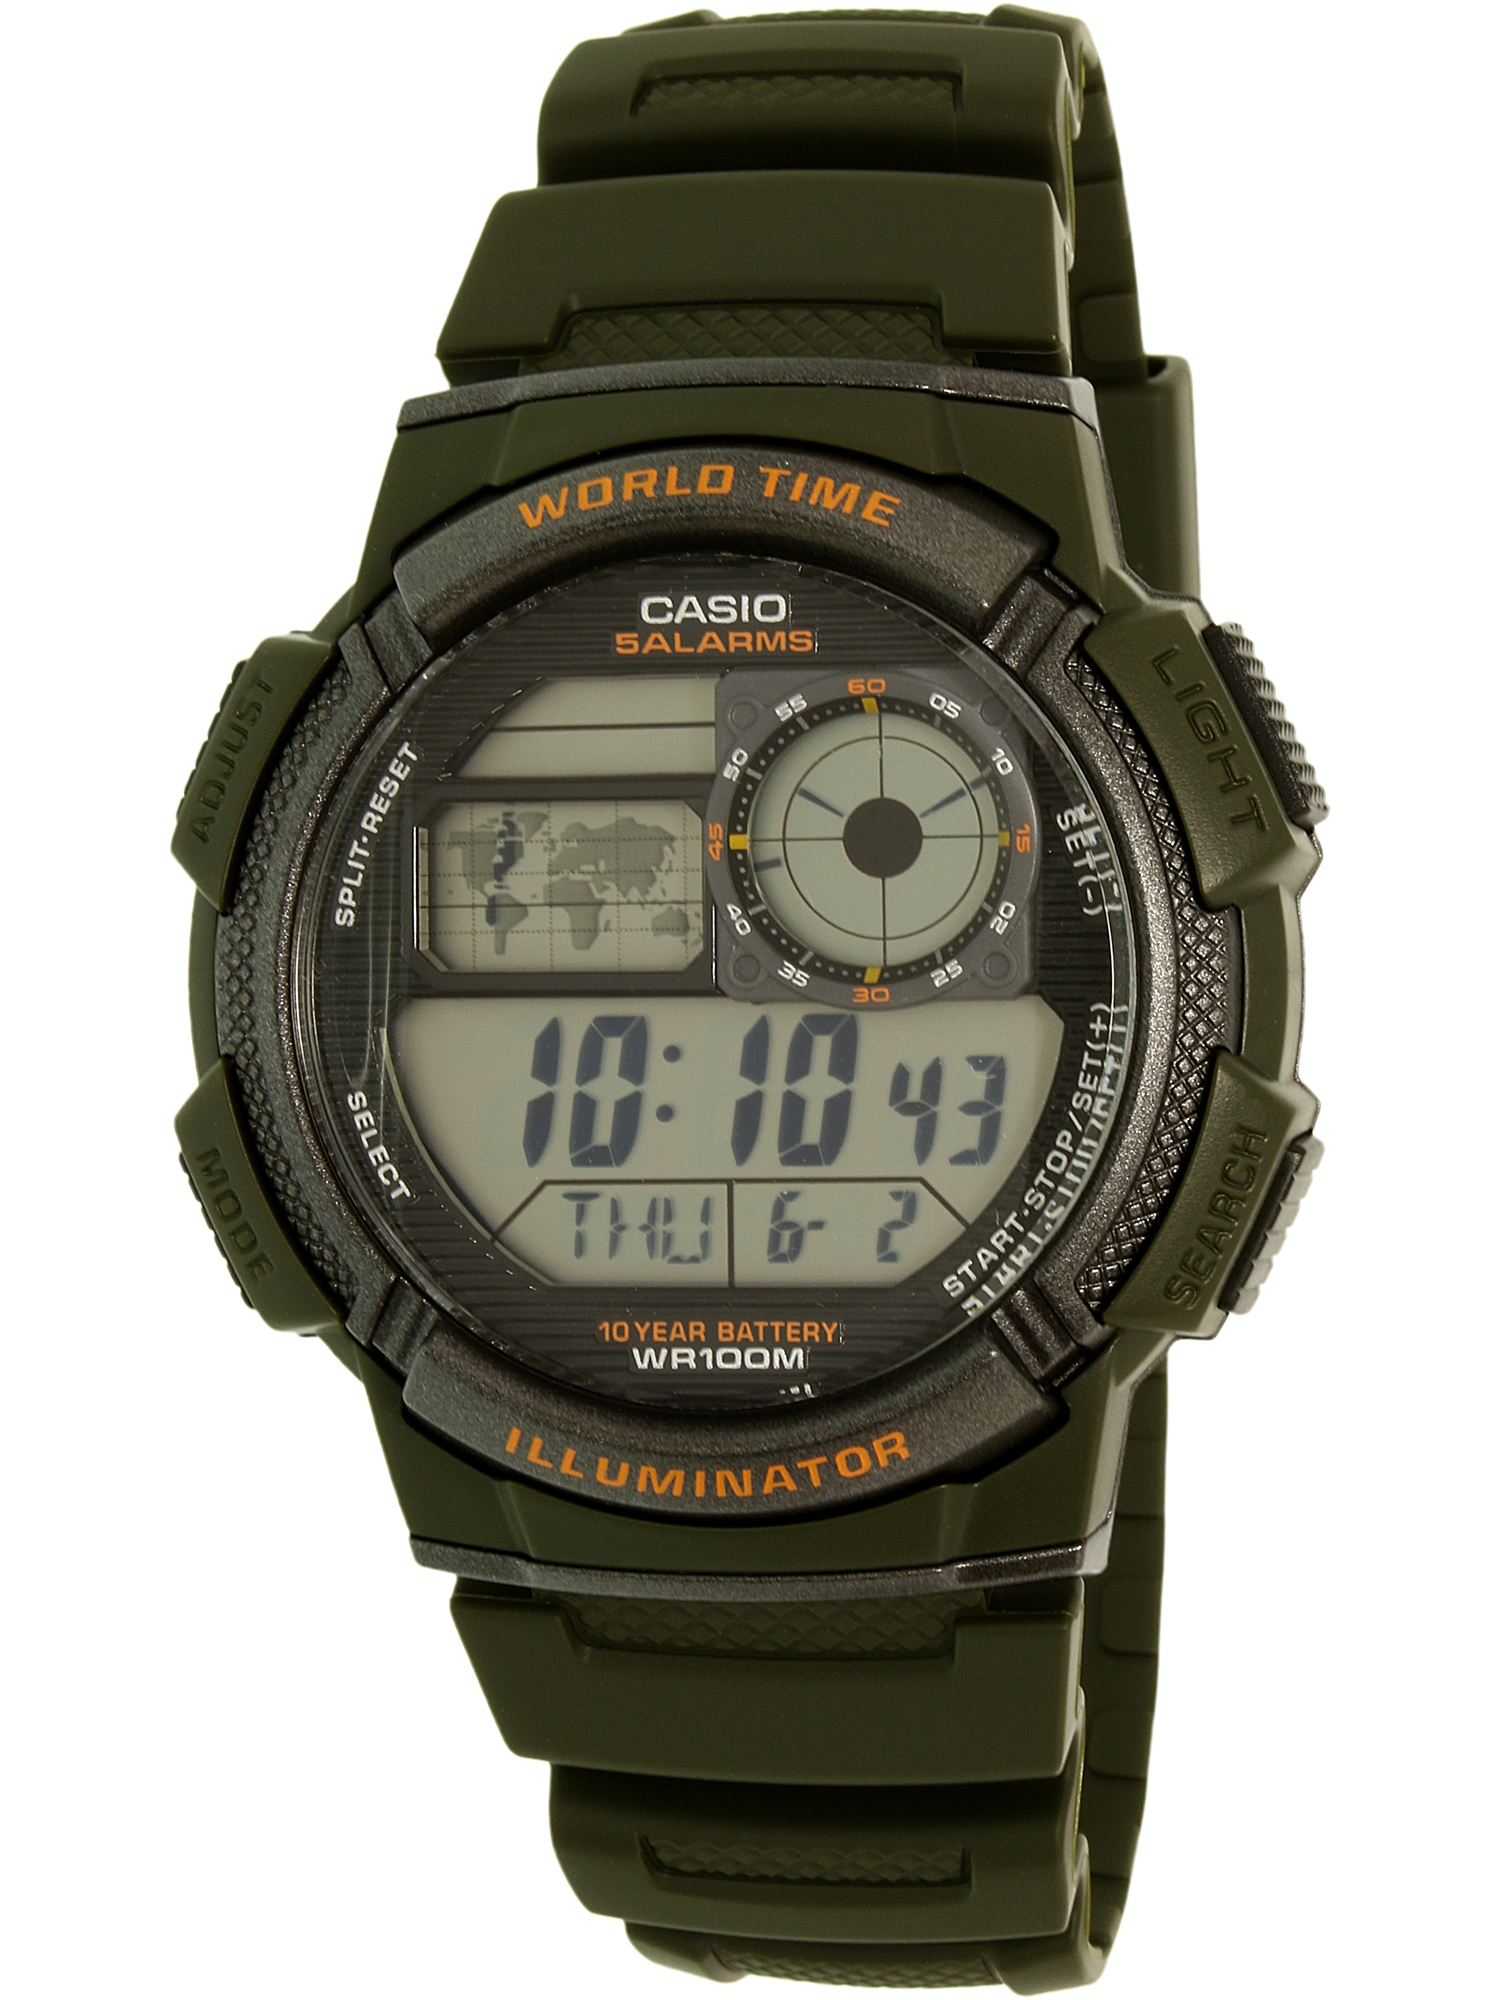 Men's World Time Watch, Green, AE1000W-3AVCF